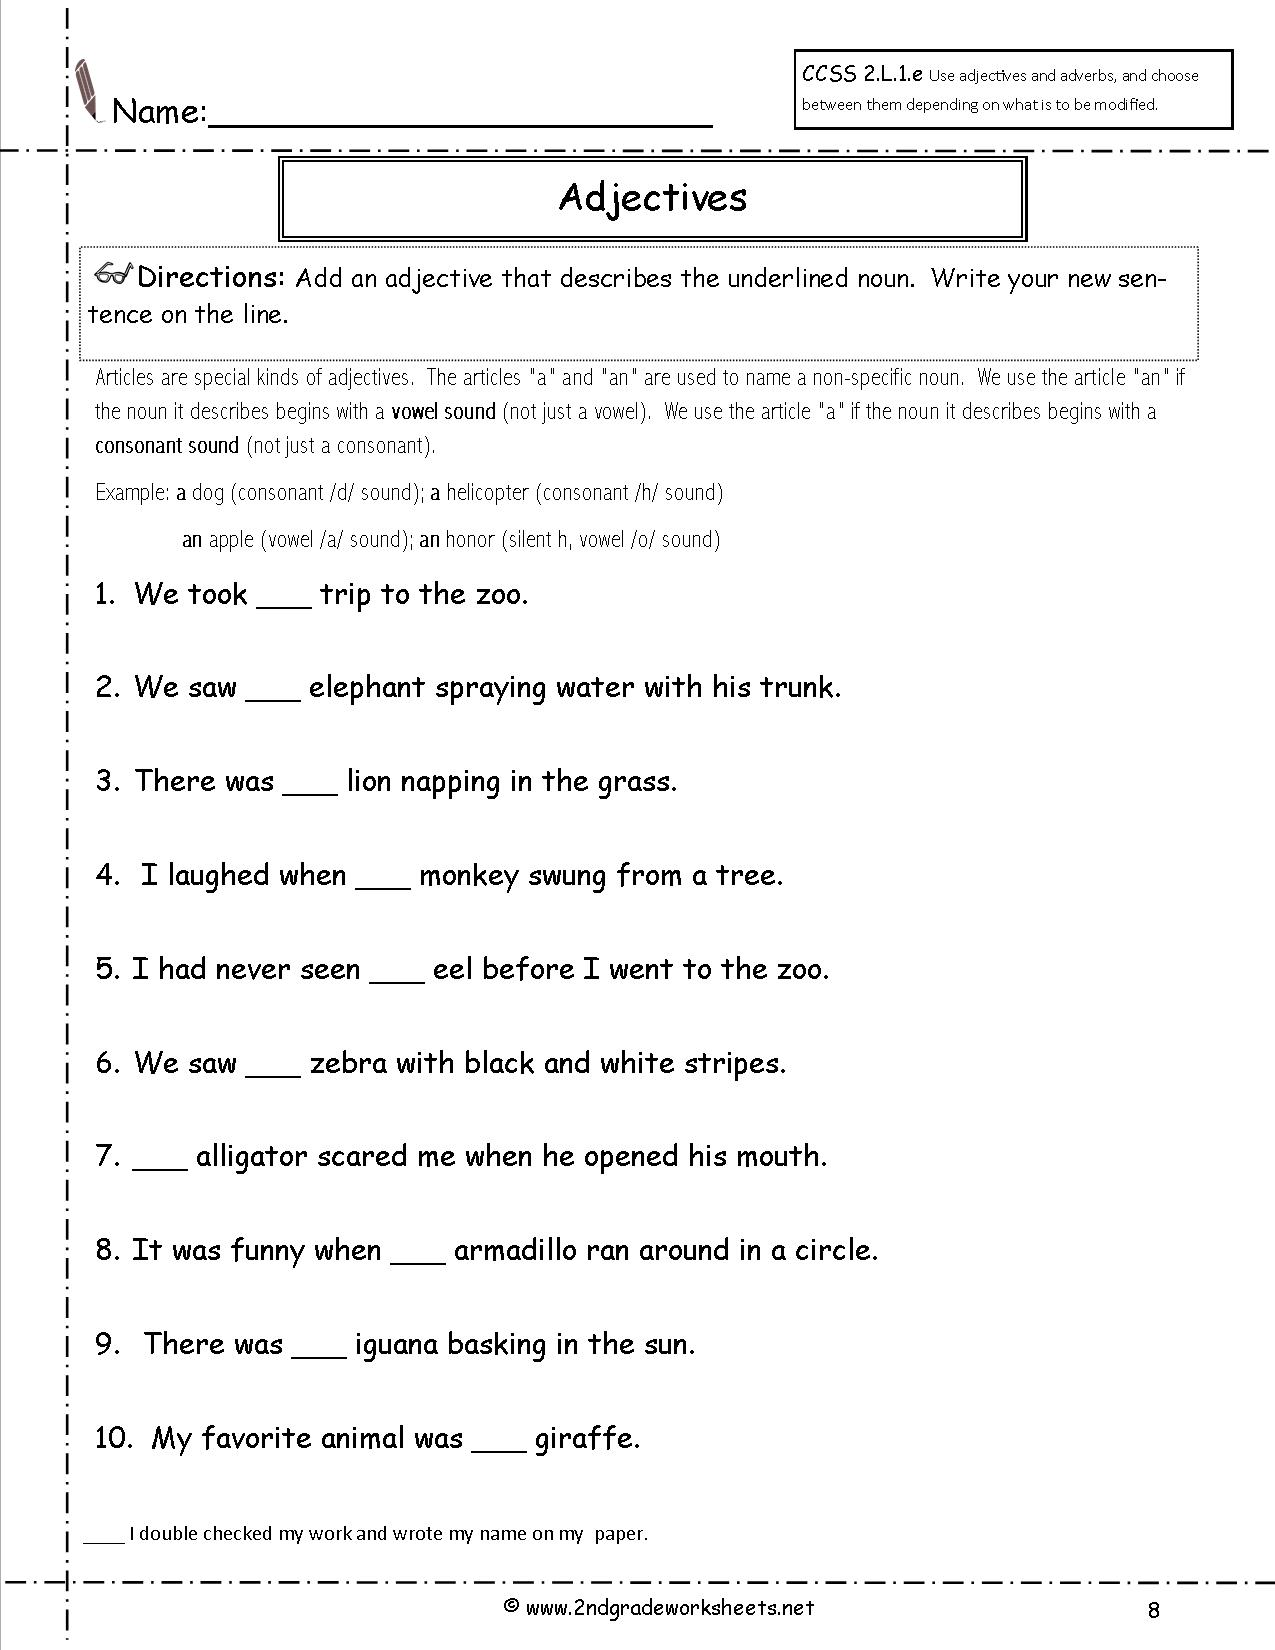 Worksheet Grammar Worksheet For Grade 1 free printable english grammar worksheets grade 7 for adjectives a or an worksheet